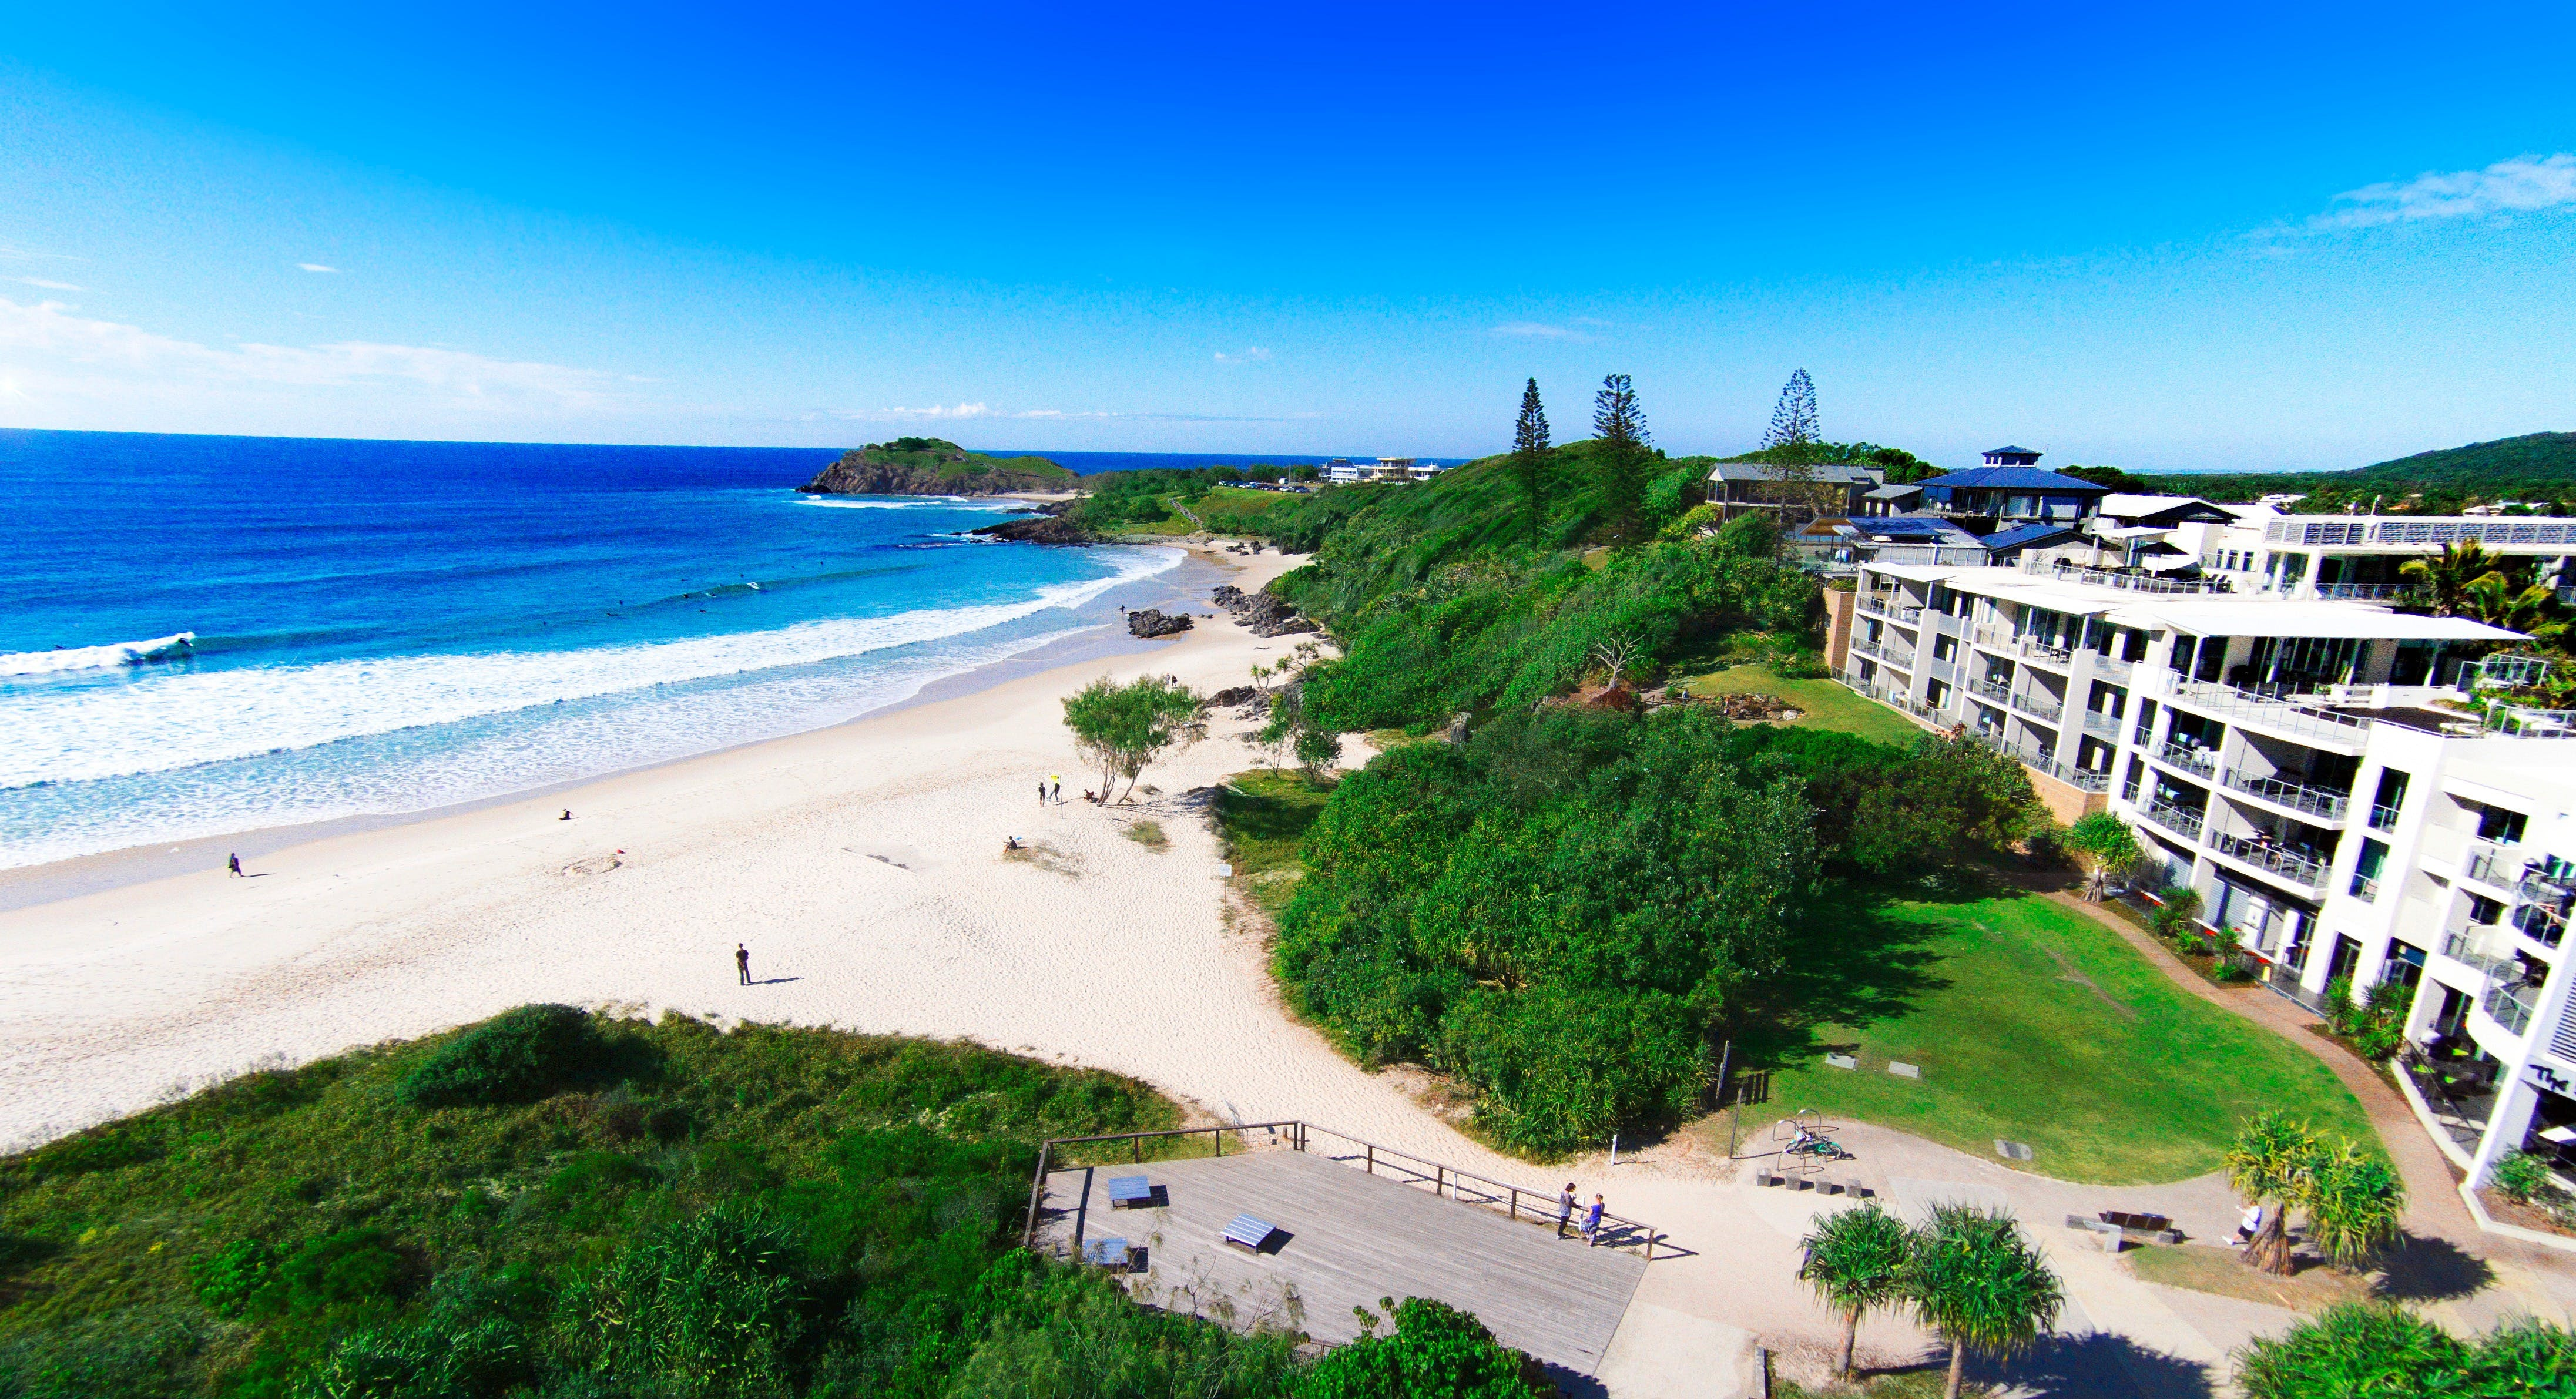 The Beach Cabarita - Tourism Canberra